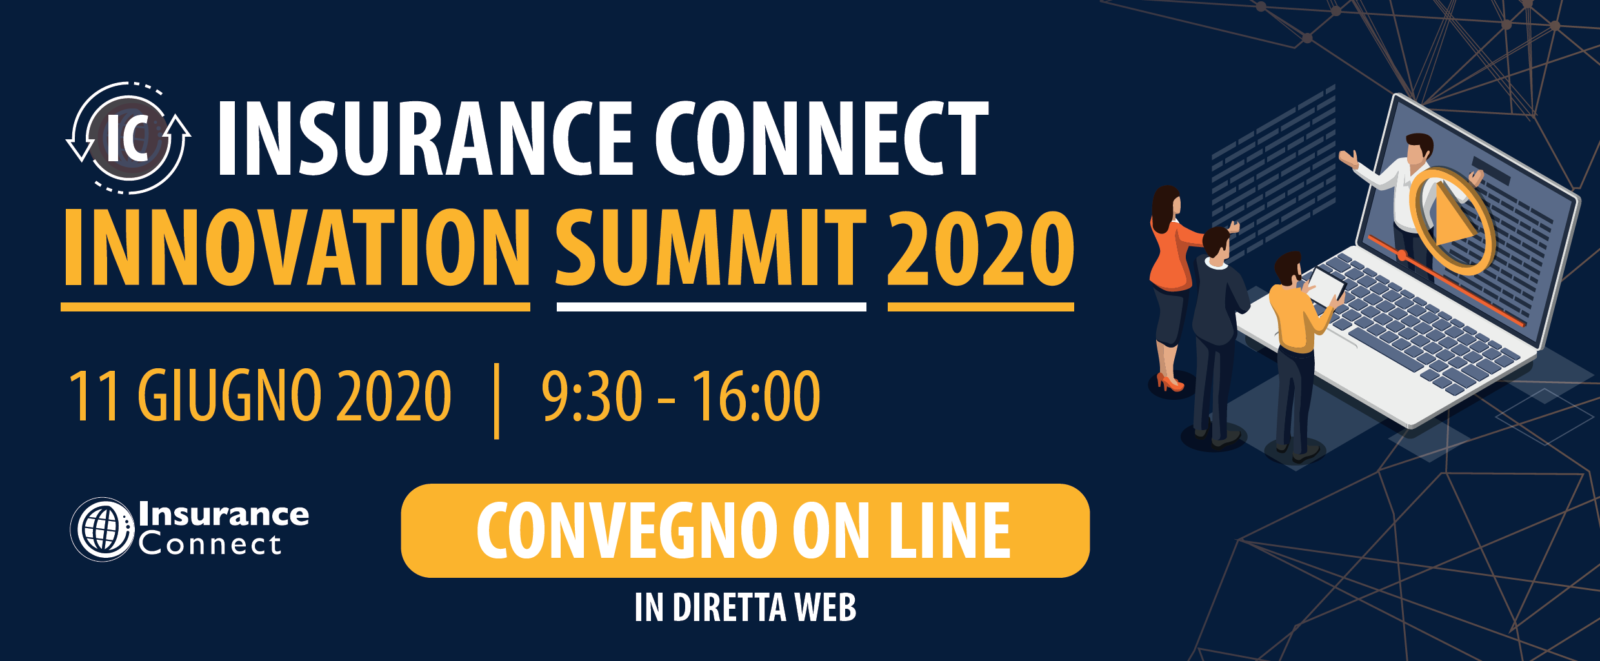 Insurance connect Innovation summit June 2020